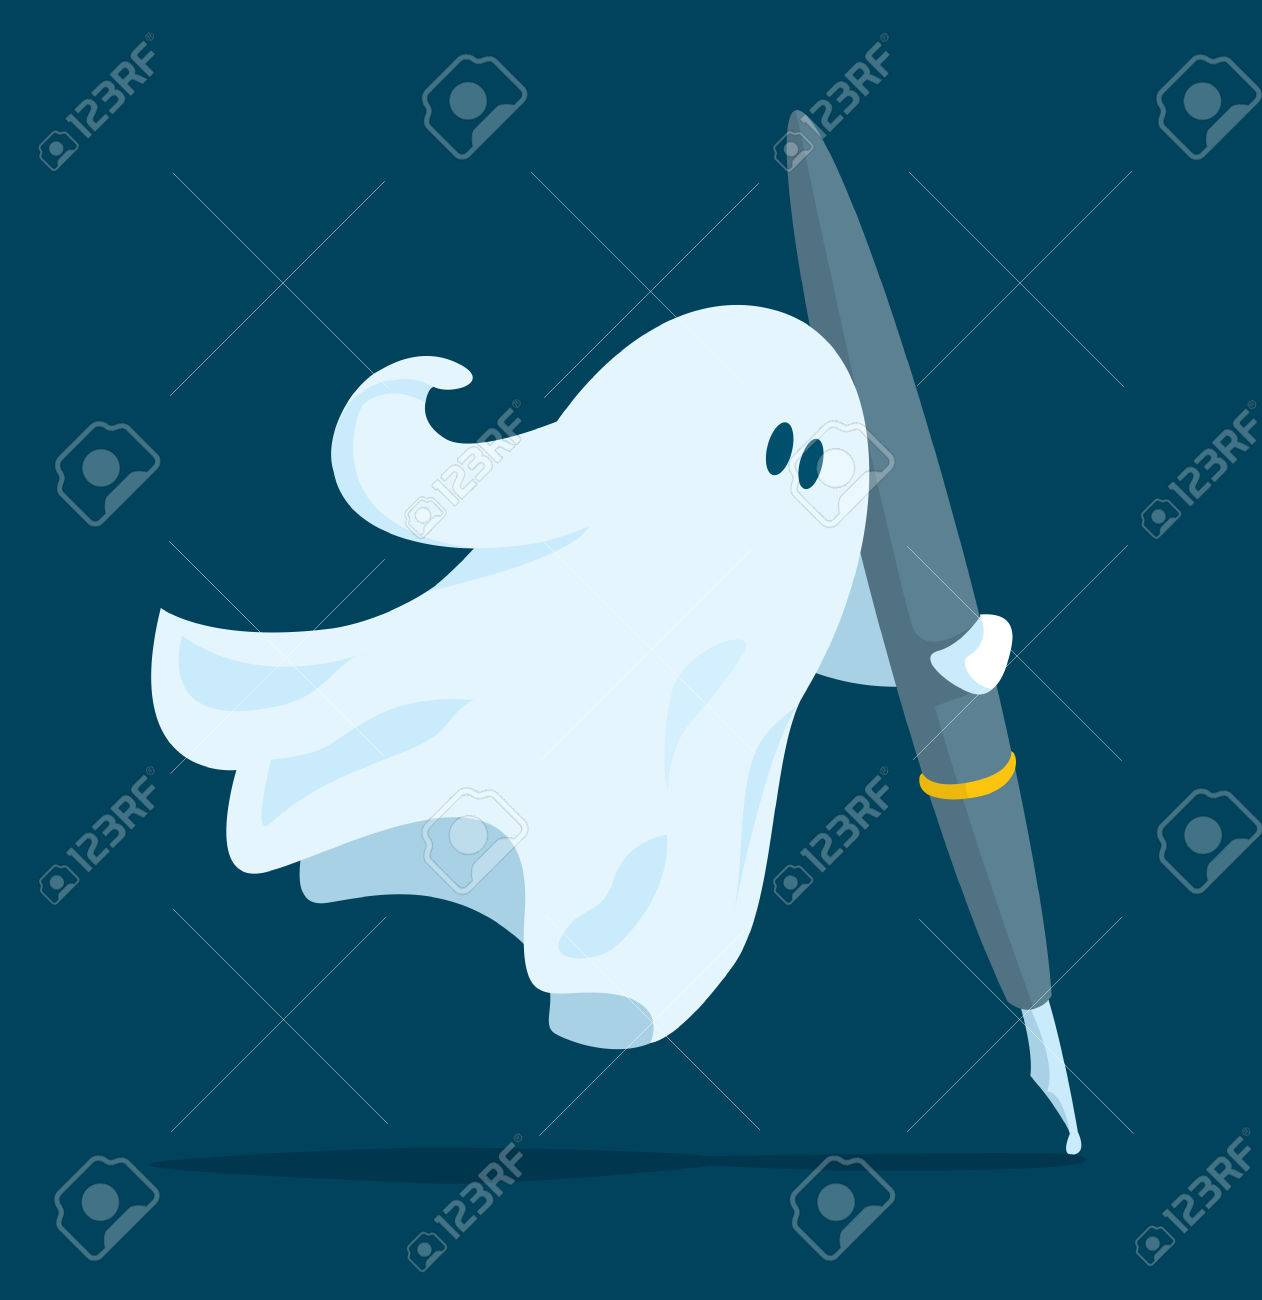 Cartoon illustration of floating ghost writer holding a pen - 81940648